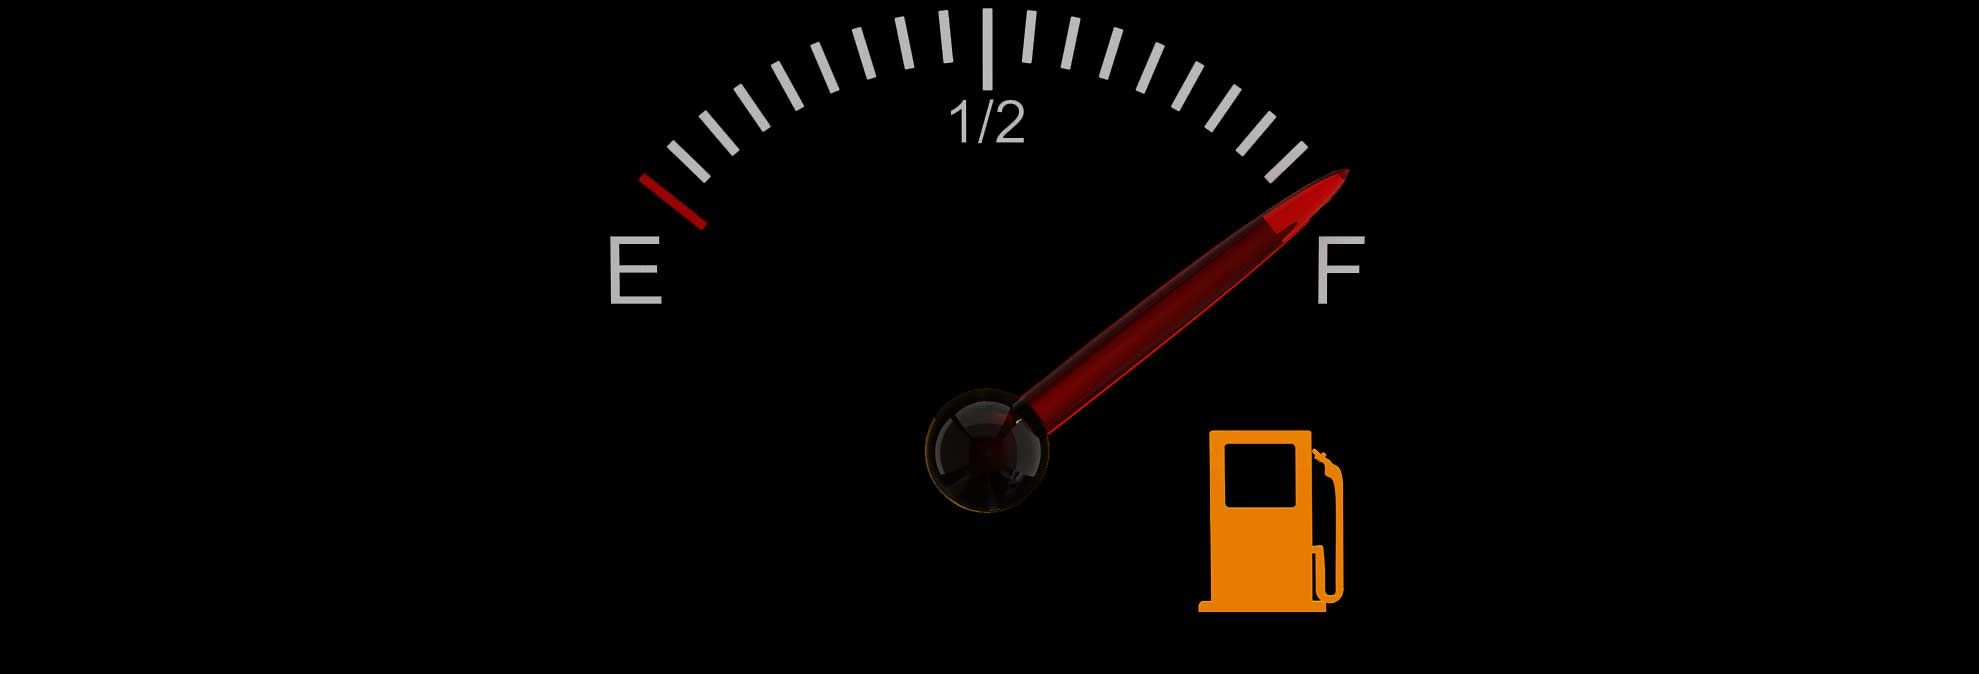 Are There Downsides to Always Keeping Your Gas Tank Full? | Gas tanks, Gas,  Fuel economy